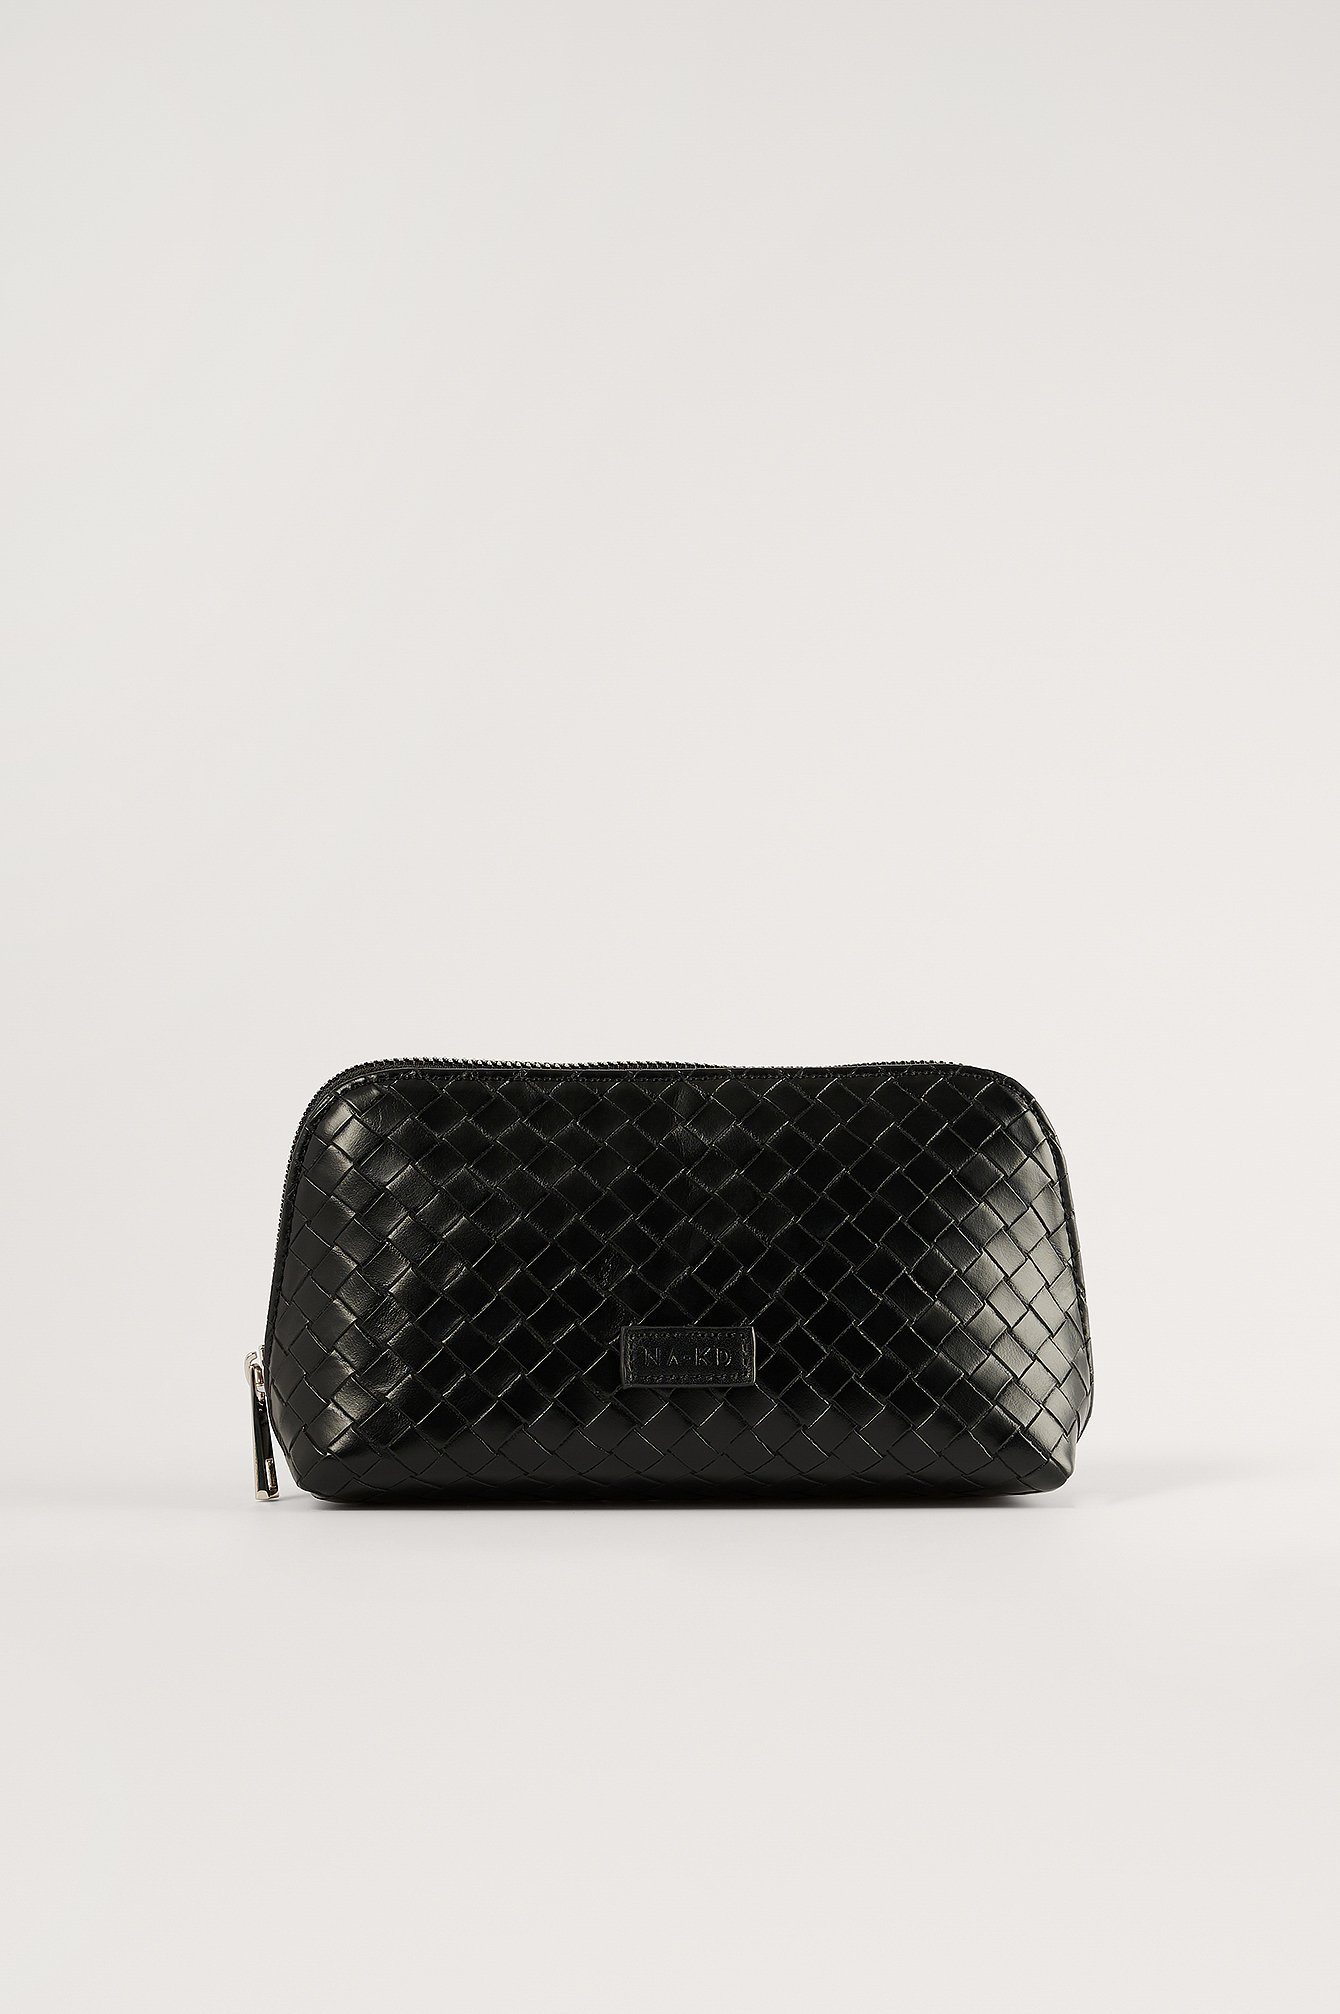 NA-KD Accessories Woven Look Make Up Bag - Black